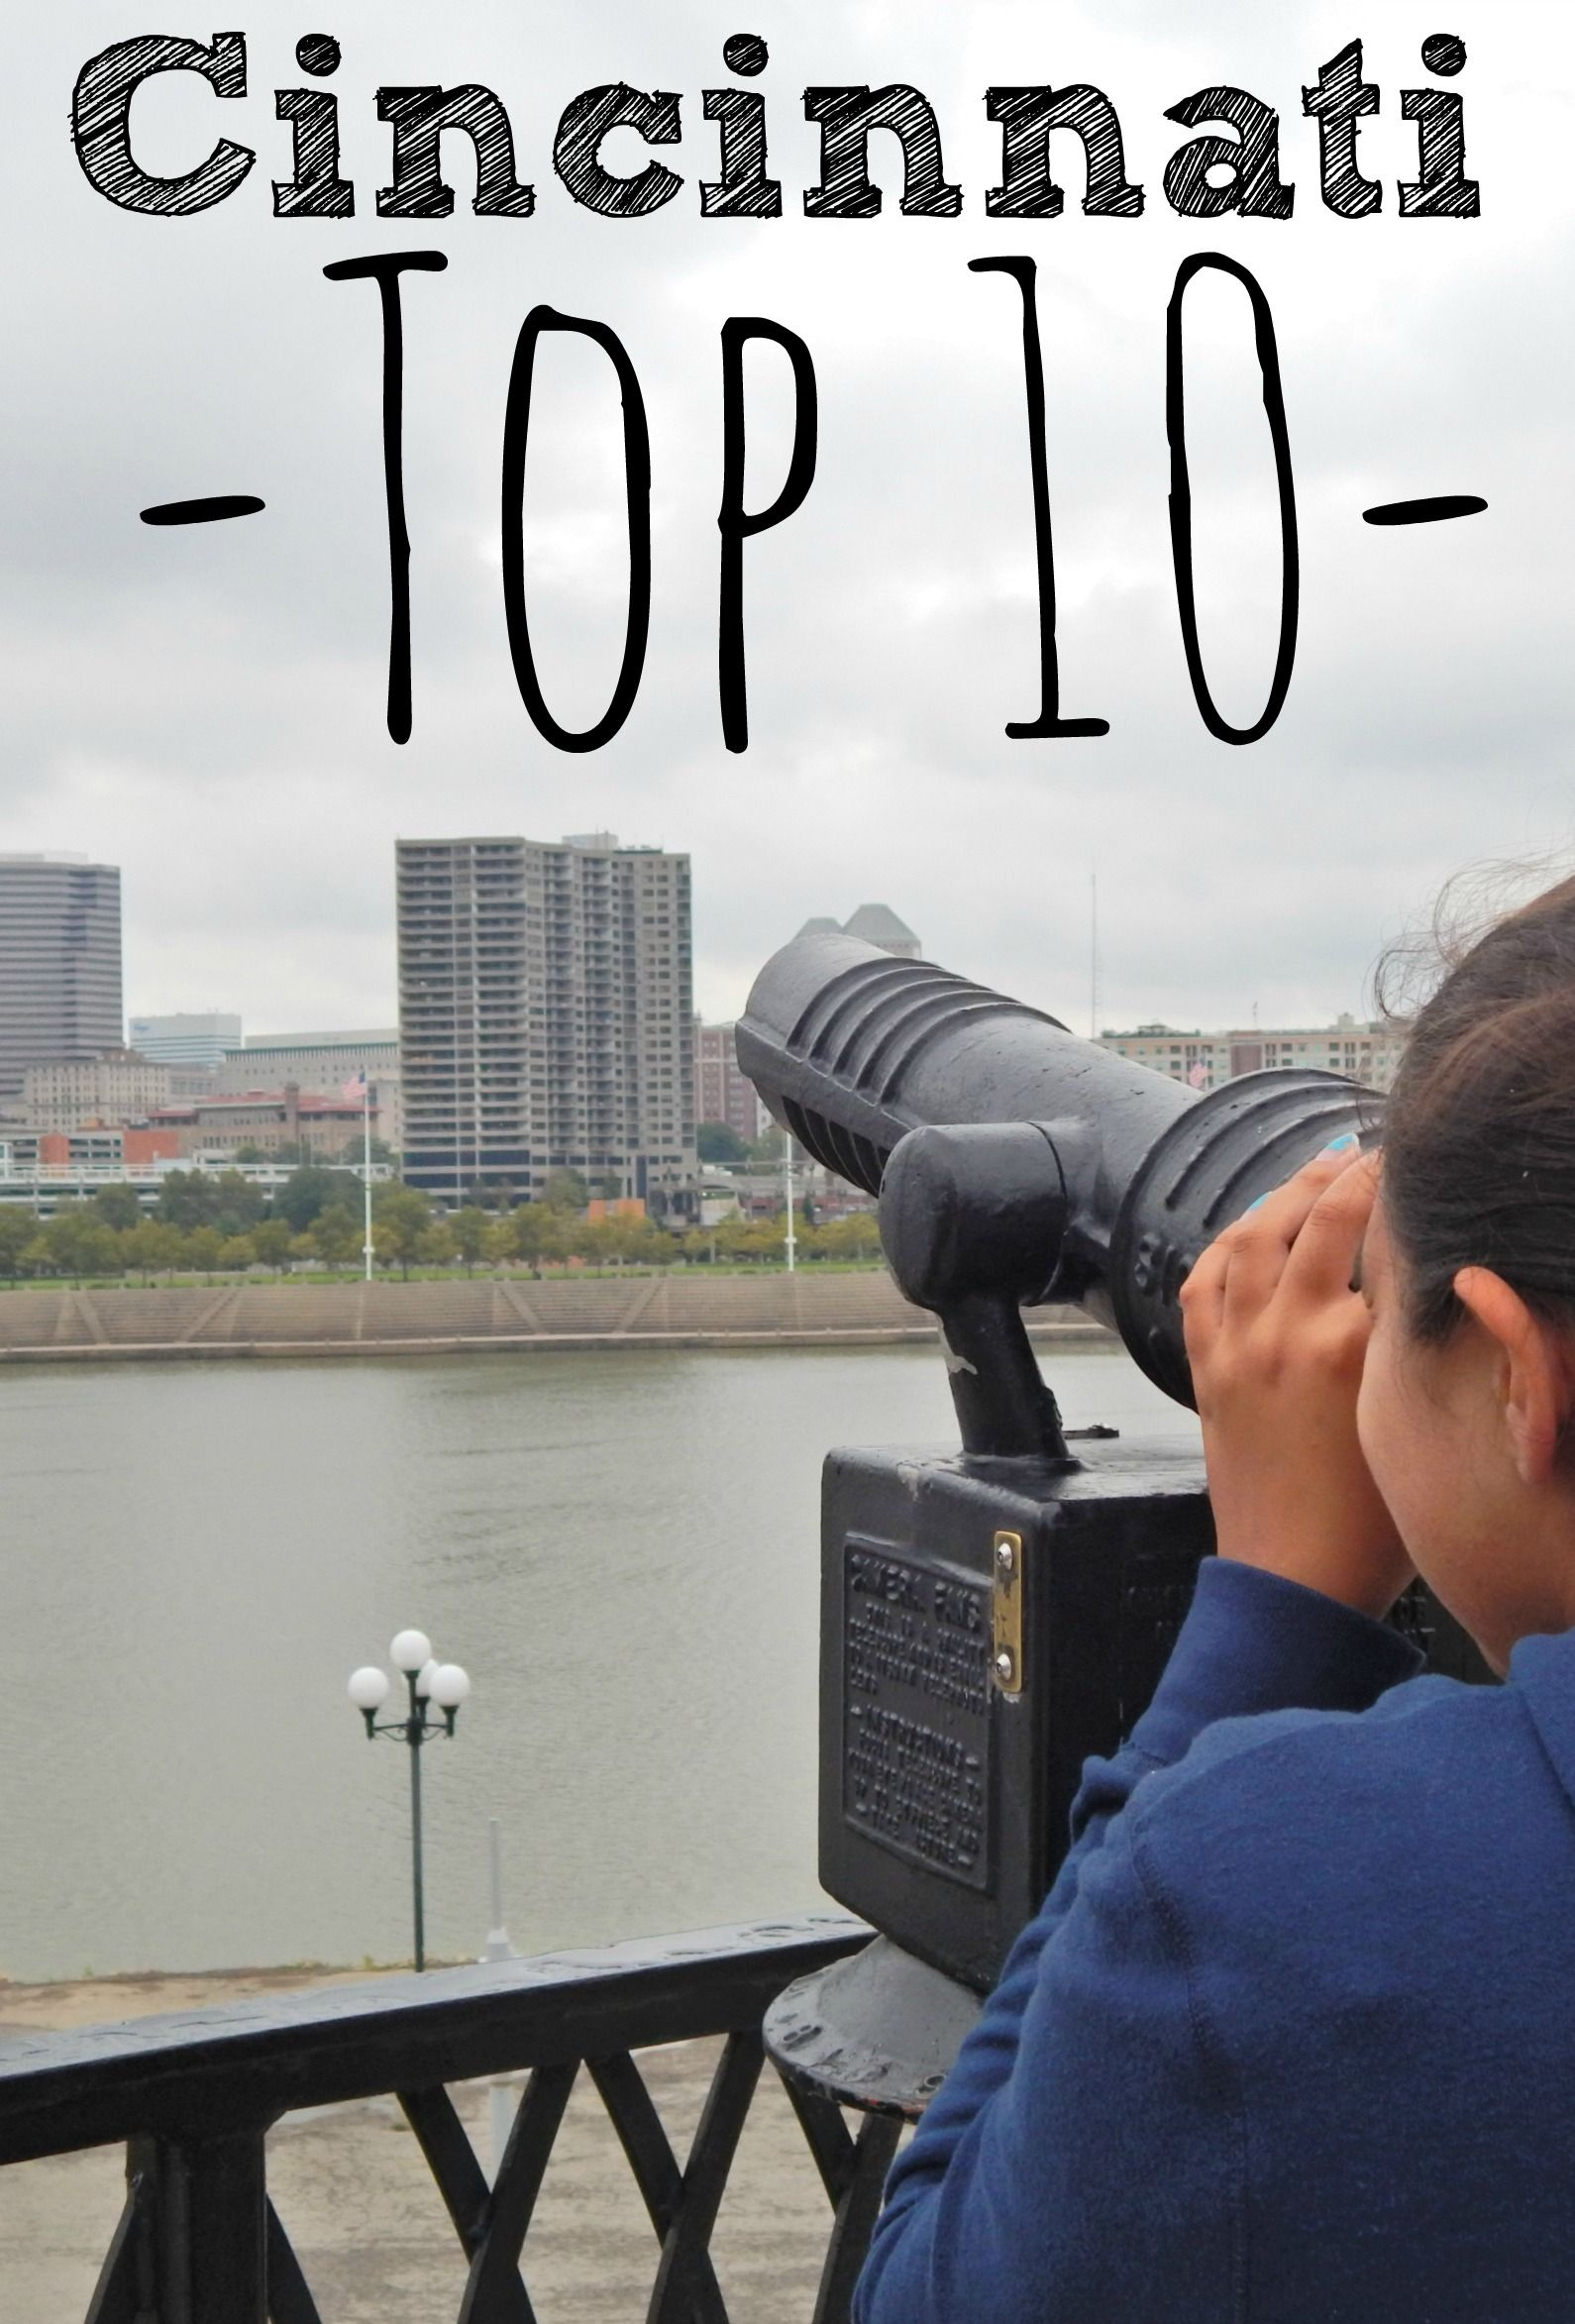 Top Things For Families To Do In Cincinnati Cincinnati Ohio - 10 things to see and do in cincinnati